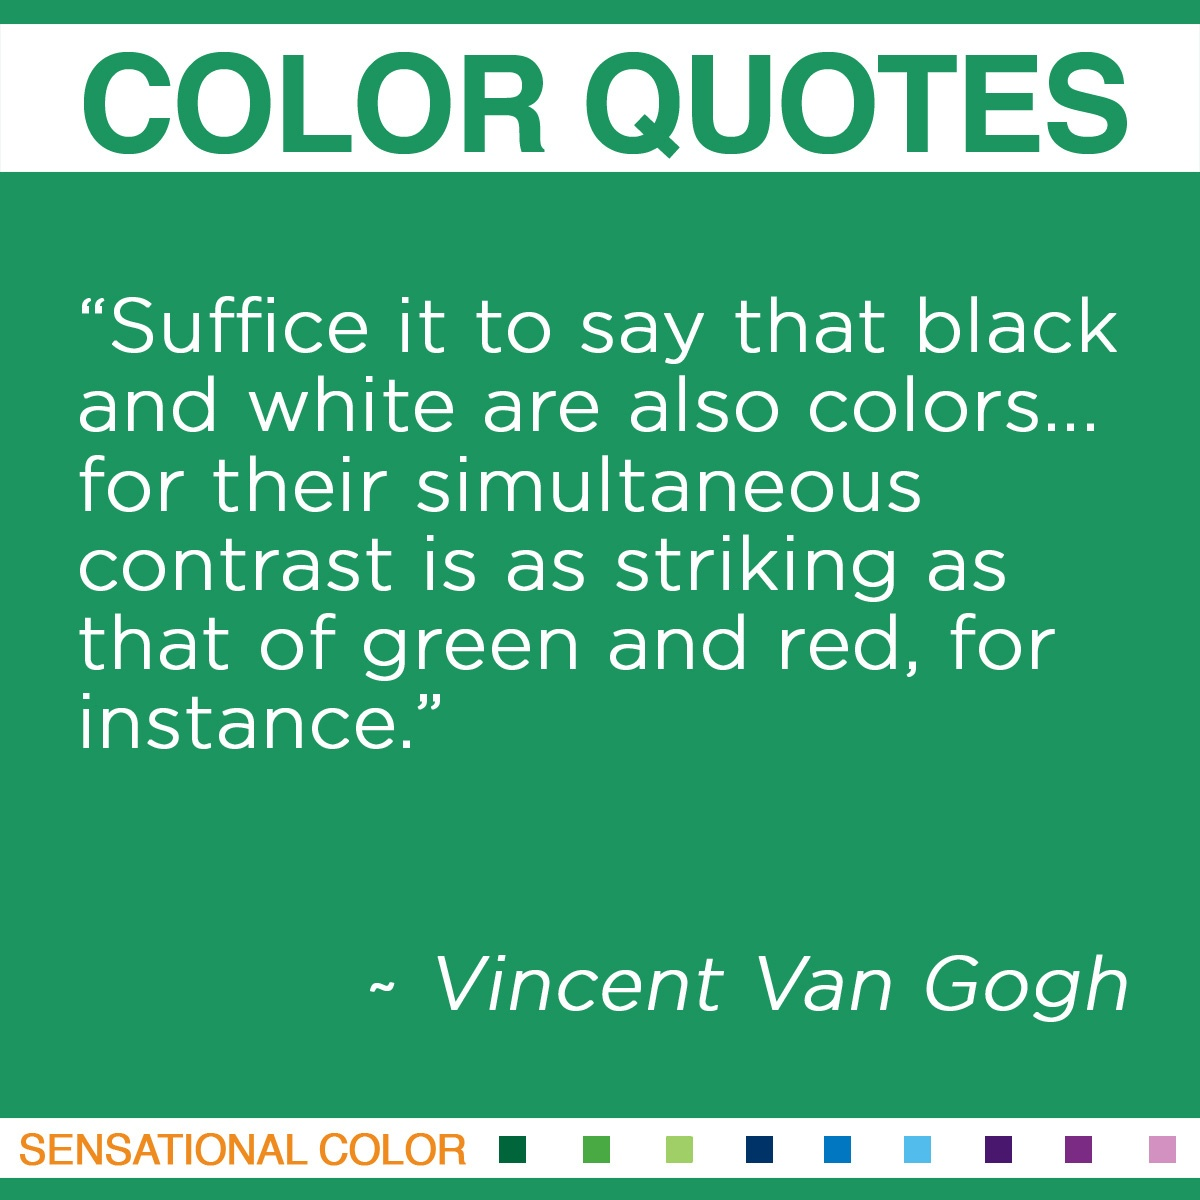 """Suffice it to say that black and white are also colors… for their simultaneous contrast is as striking as that of green and red, for instance."" - Vincent Van Gogh"